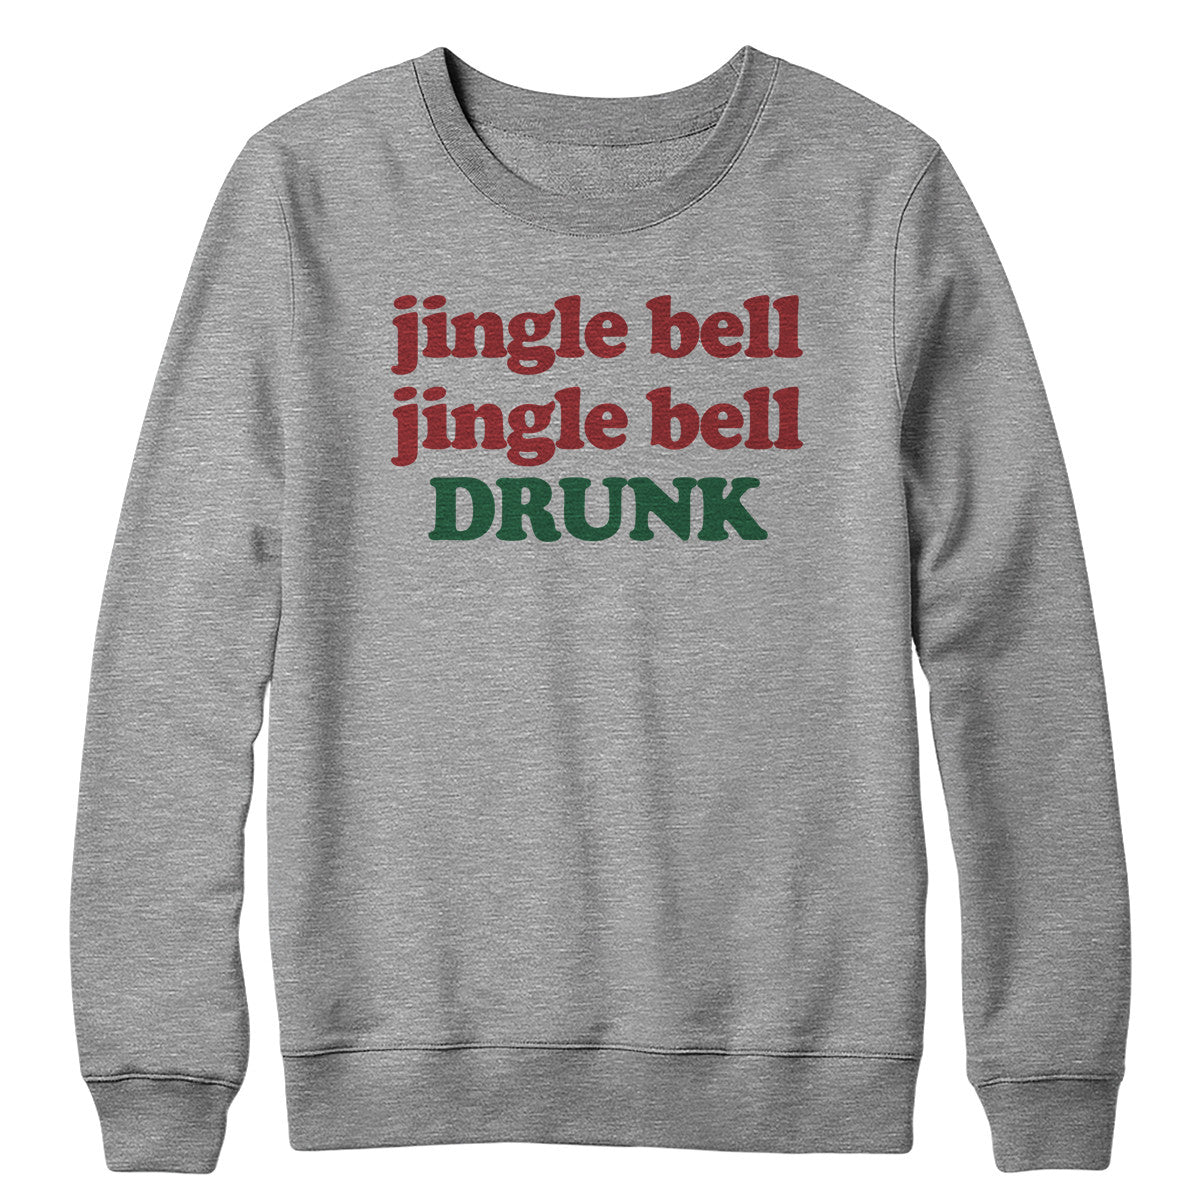 Jingle Bell Drunk Crewneck Sweatshirt